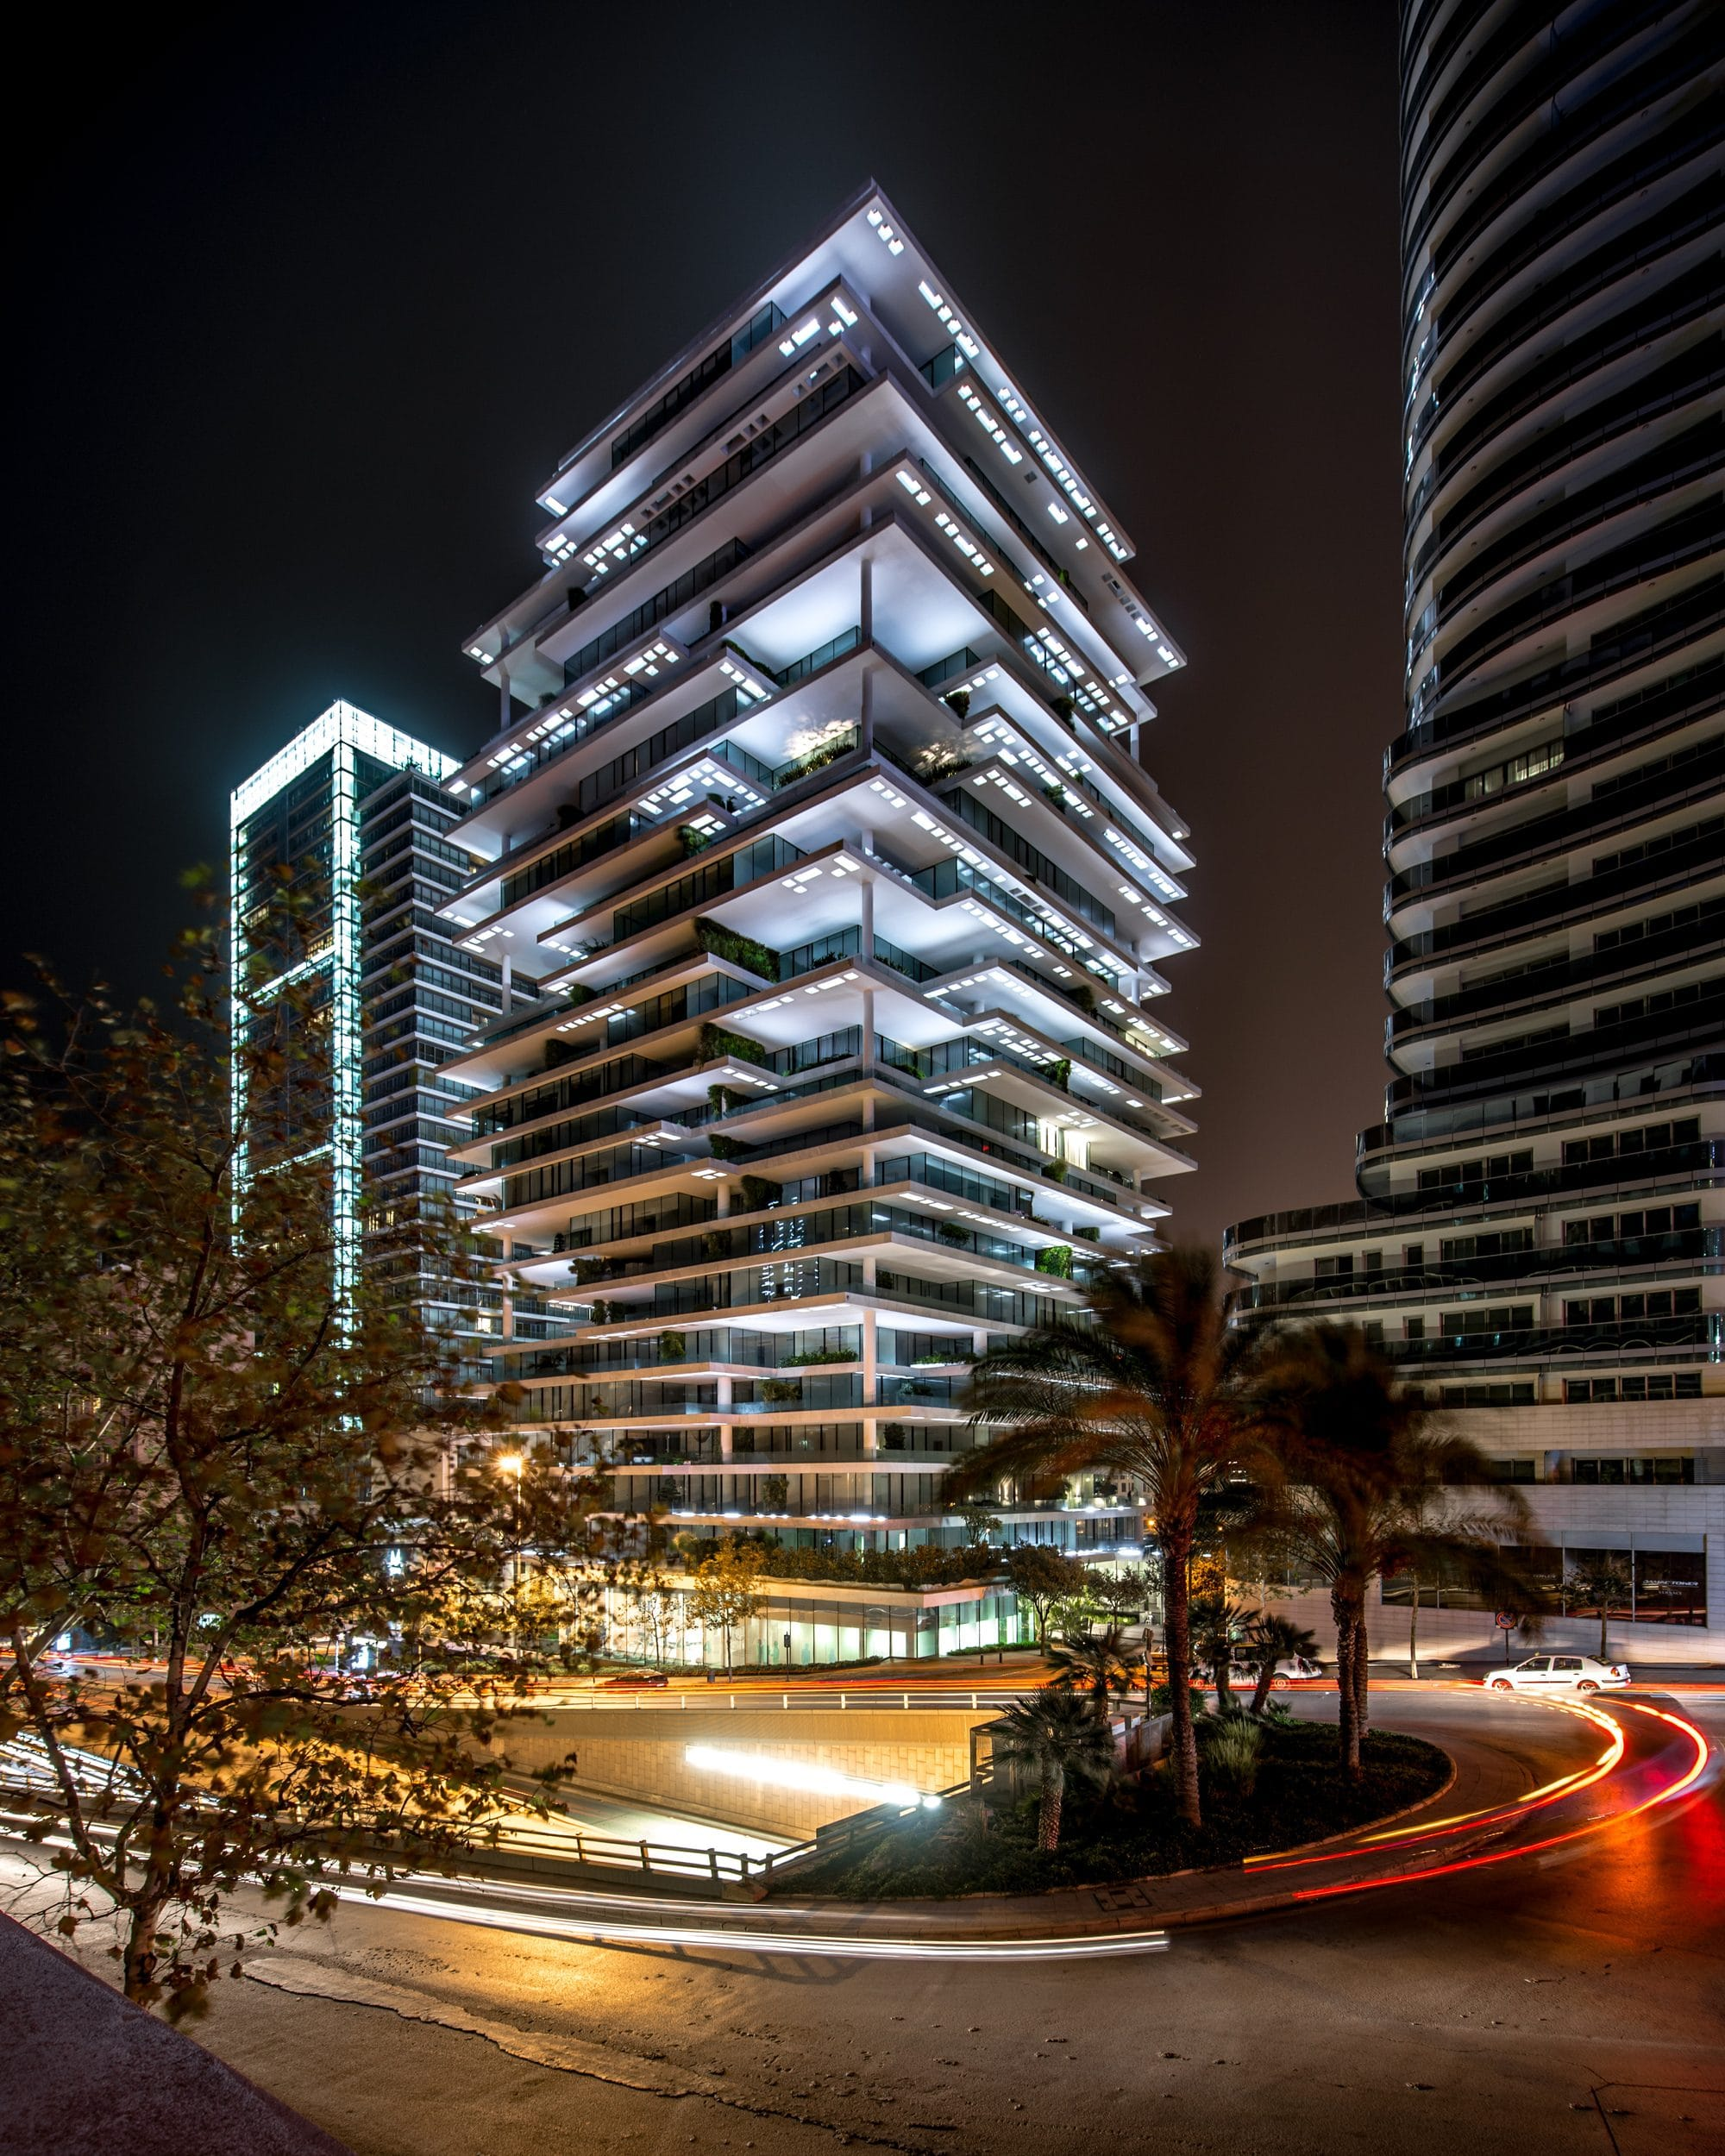 Жилой комплекс Beirut Terraces в Ливане от Herzog & de Meuron, HQ architecture, HQarch, HQ arch, high quality architecture